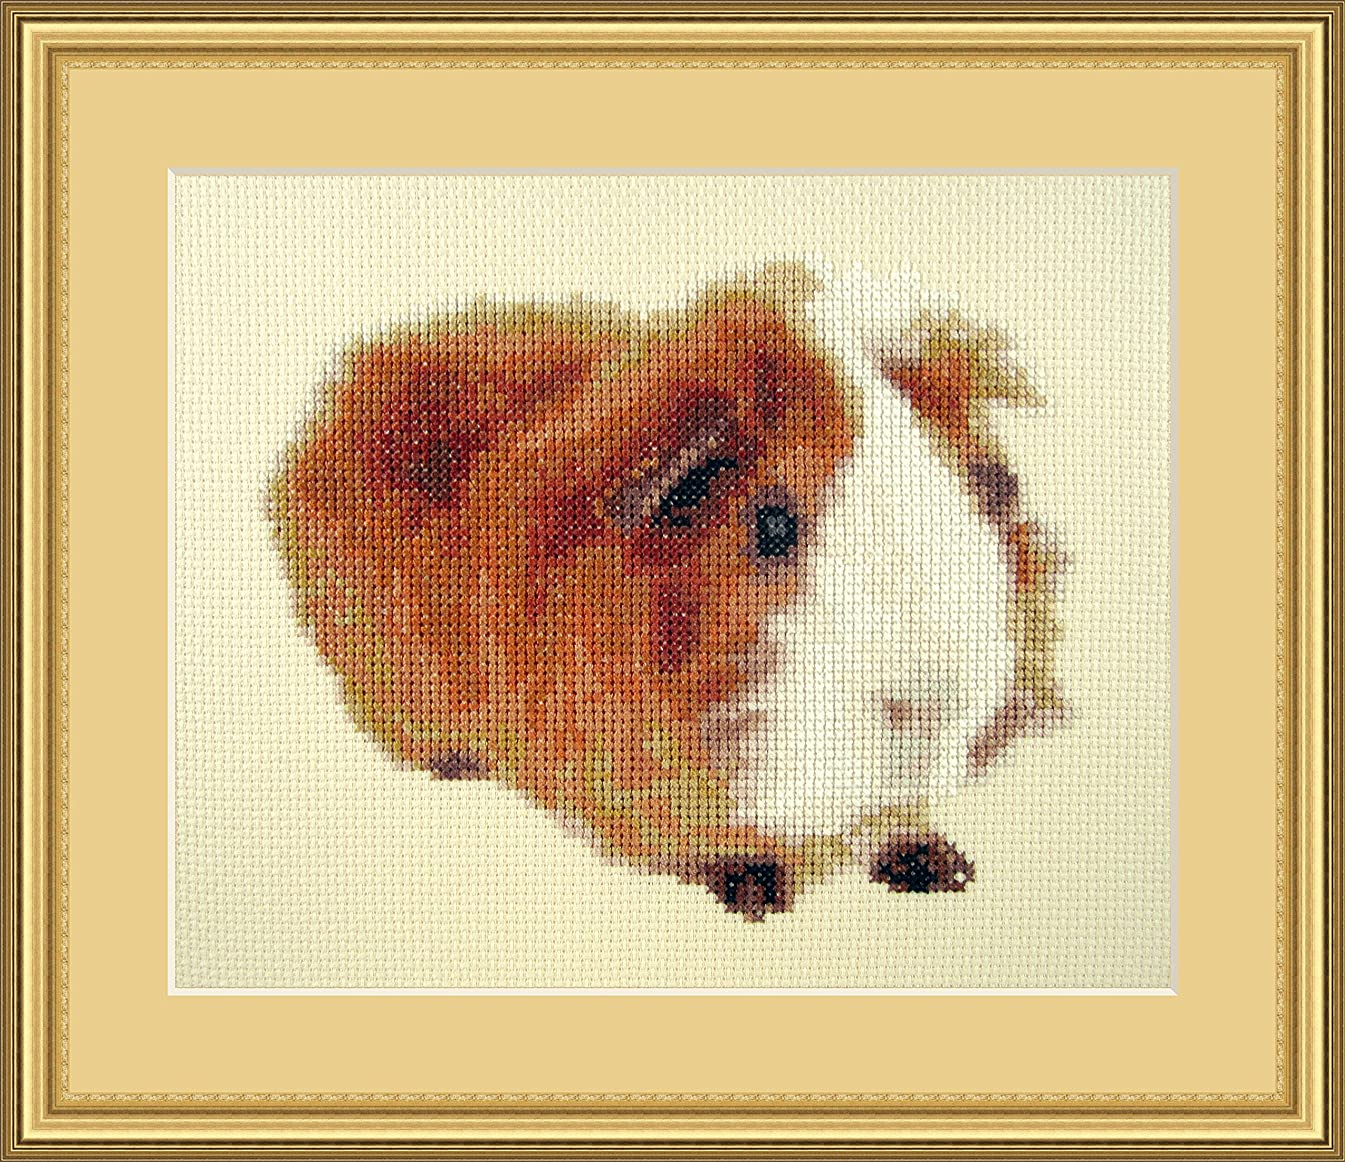 Reds have more fun Counted Cross Stitch Kit By Orcraphics